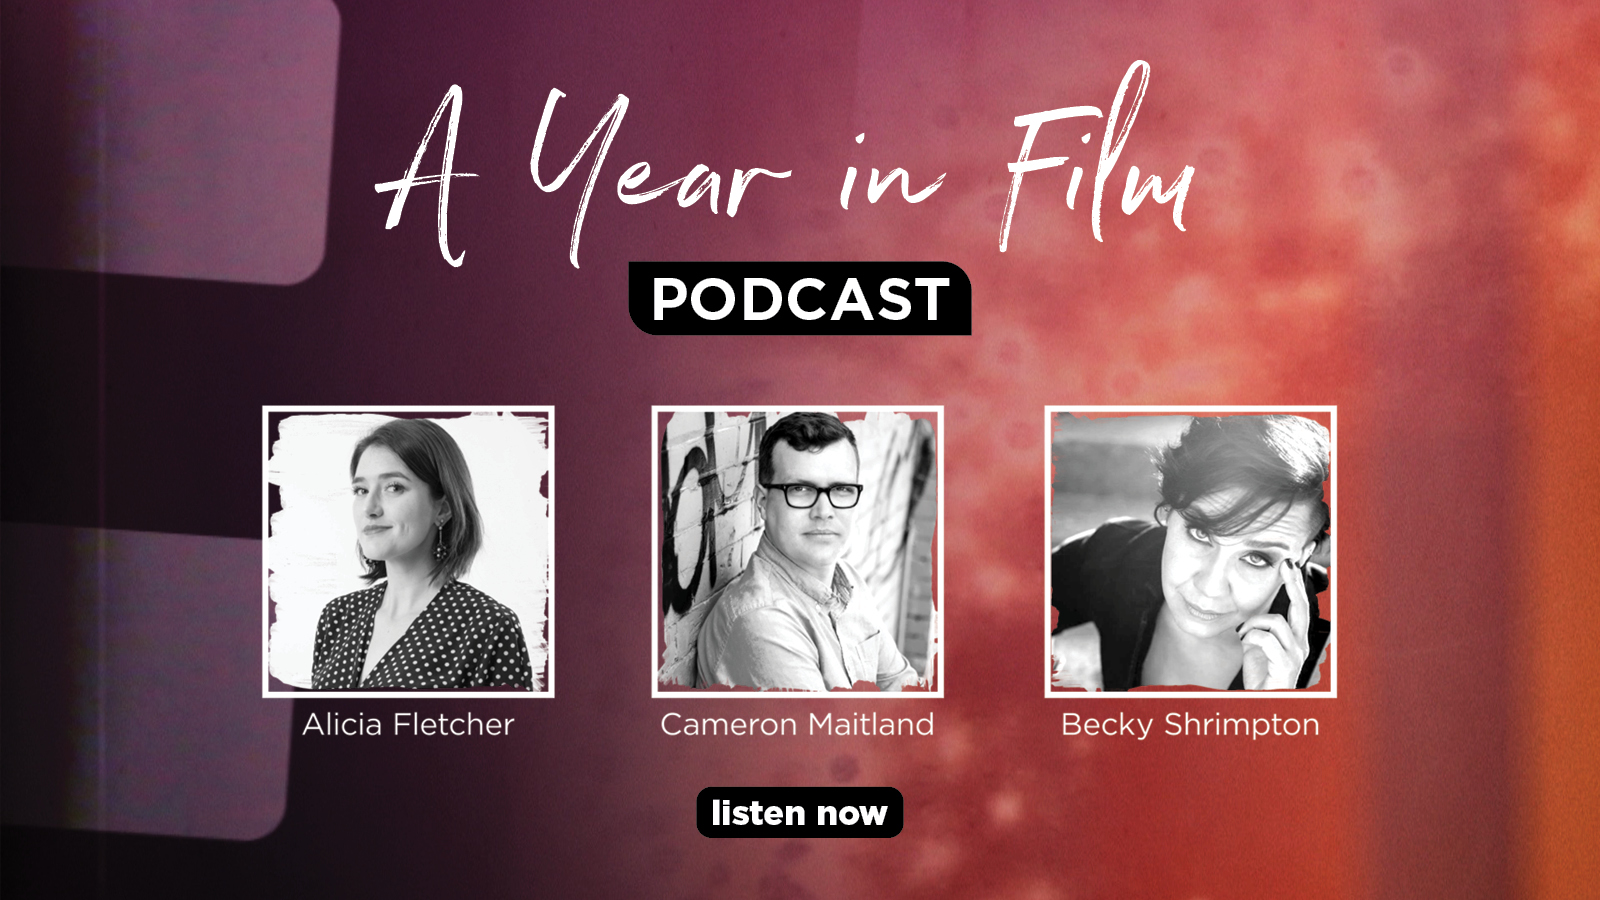 A Year in Film Podcast: Listen Now